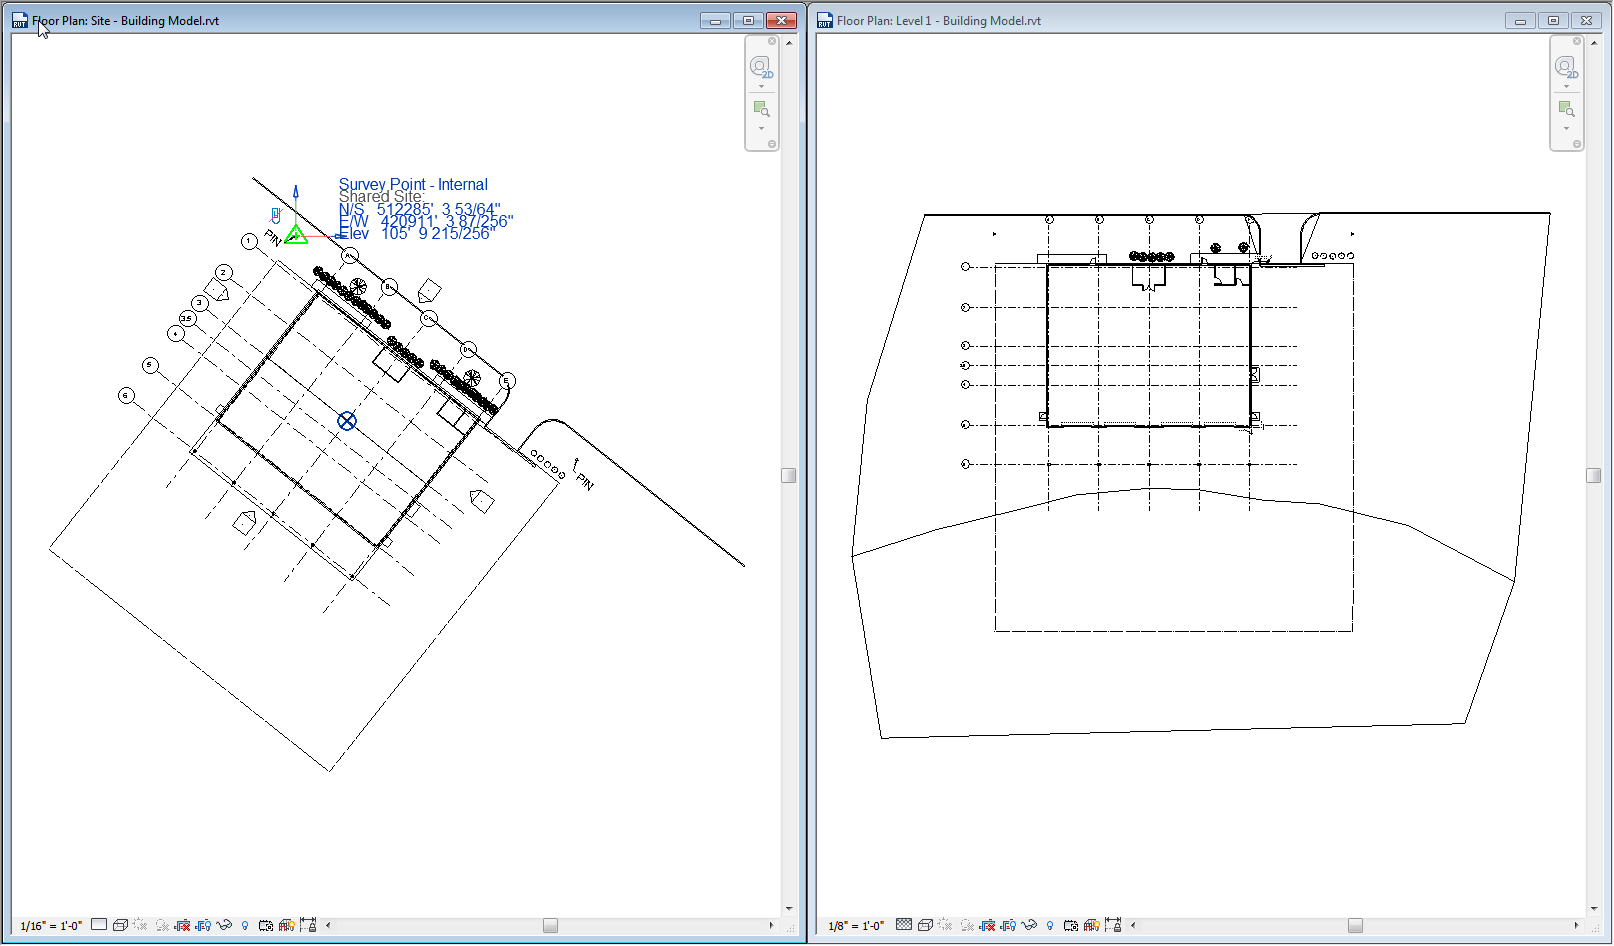 Using Revit's Coordinates to establish Control for use with